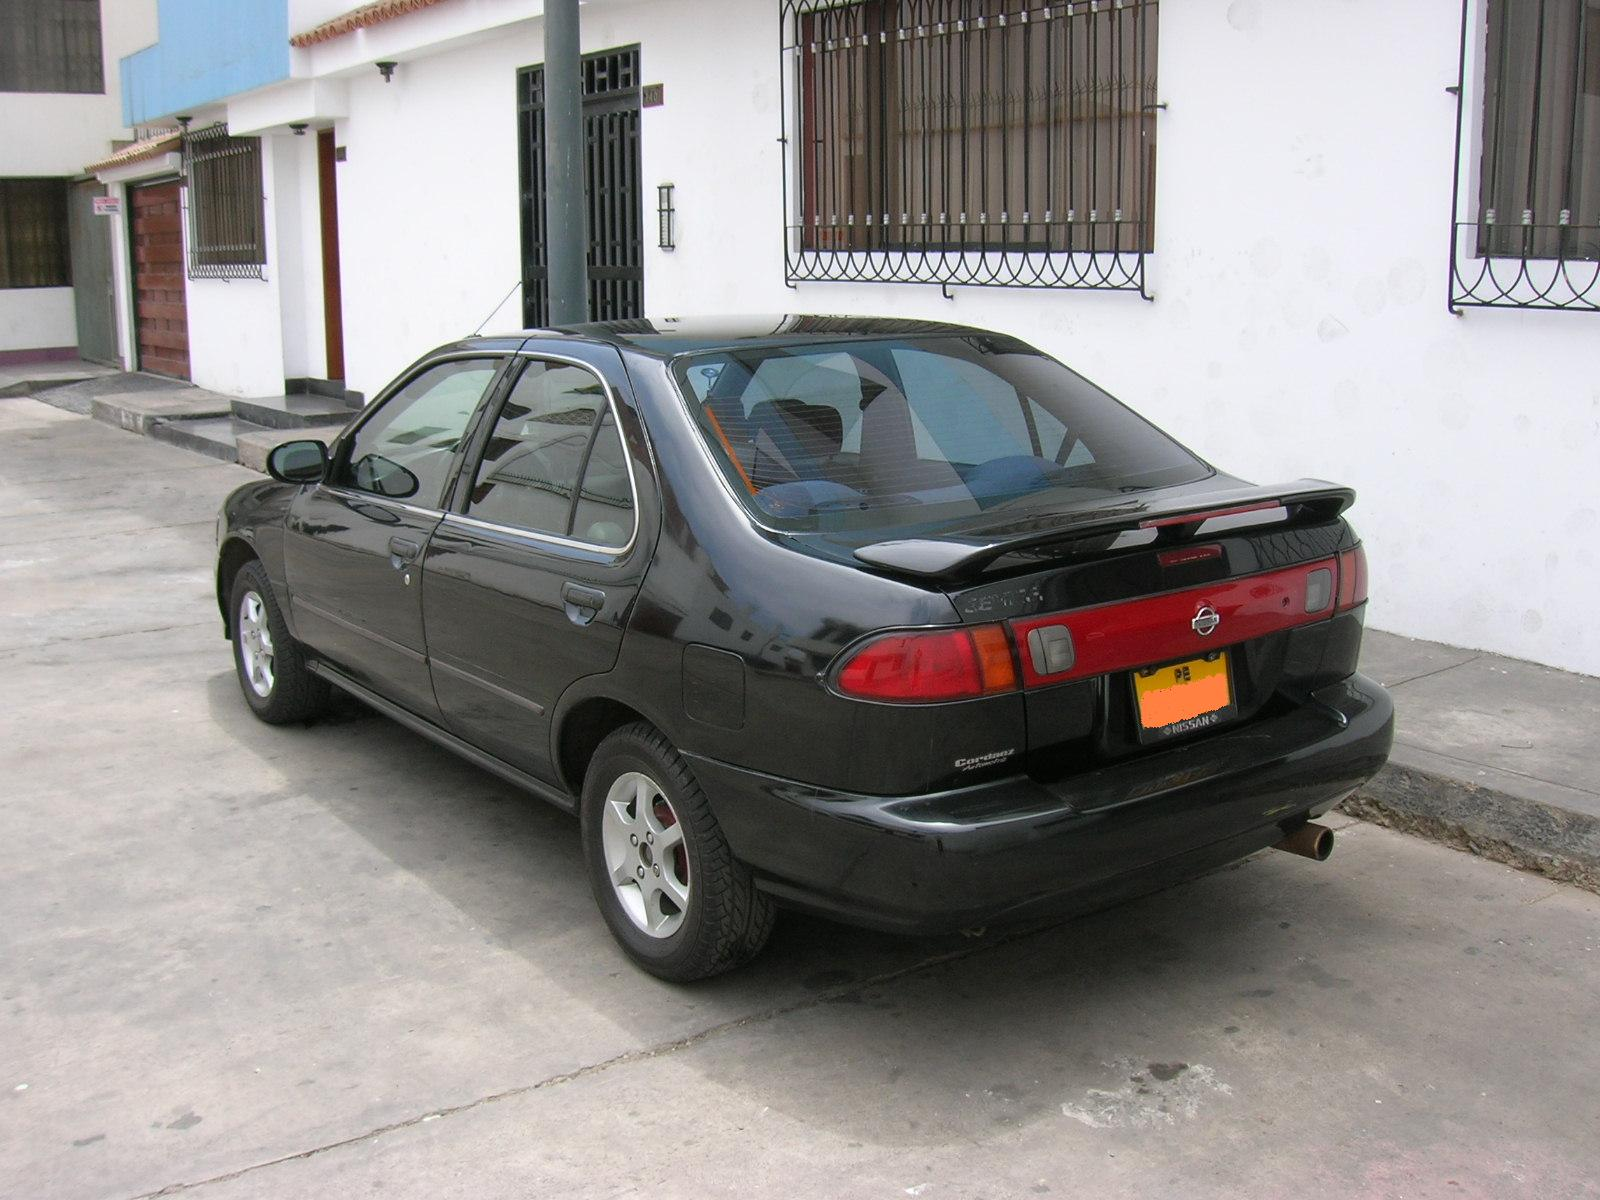 1998 nissan sentra b14 pictures information and specs auto. Black Bedroom Furniture Sets. Home Design Ideas